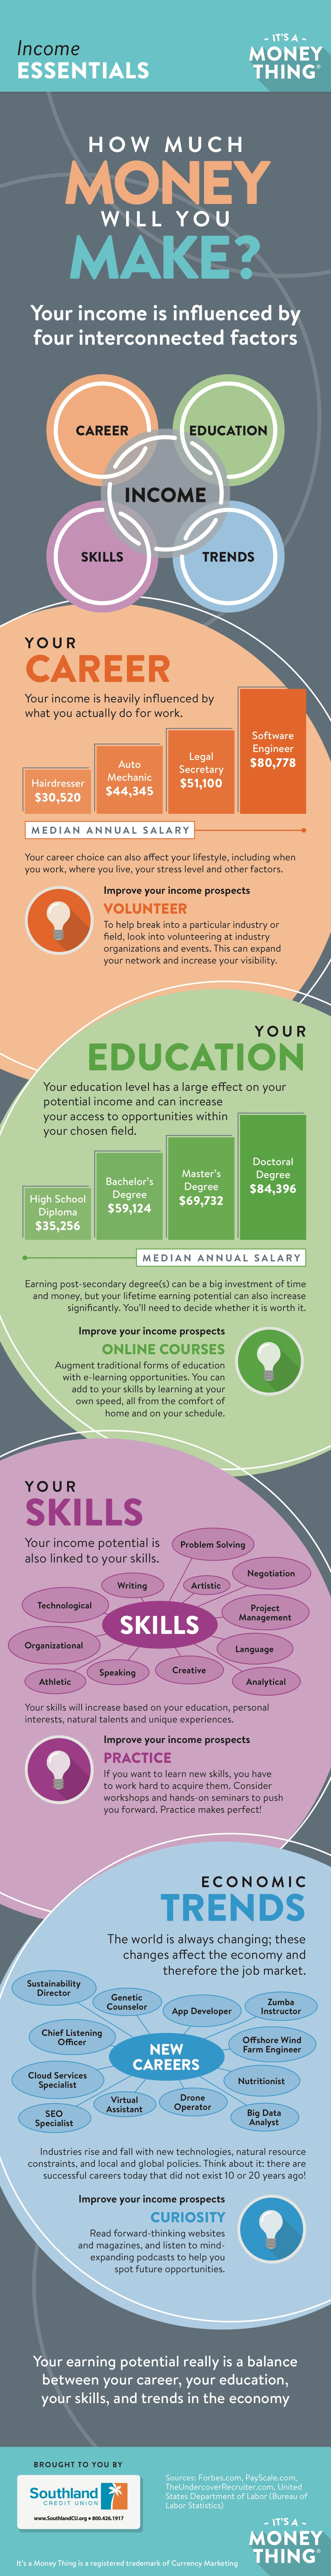 how much money you will make infographic